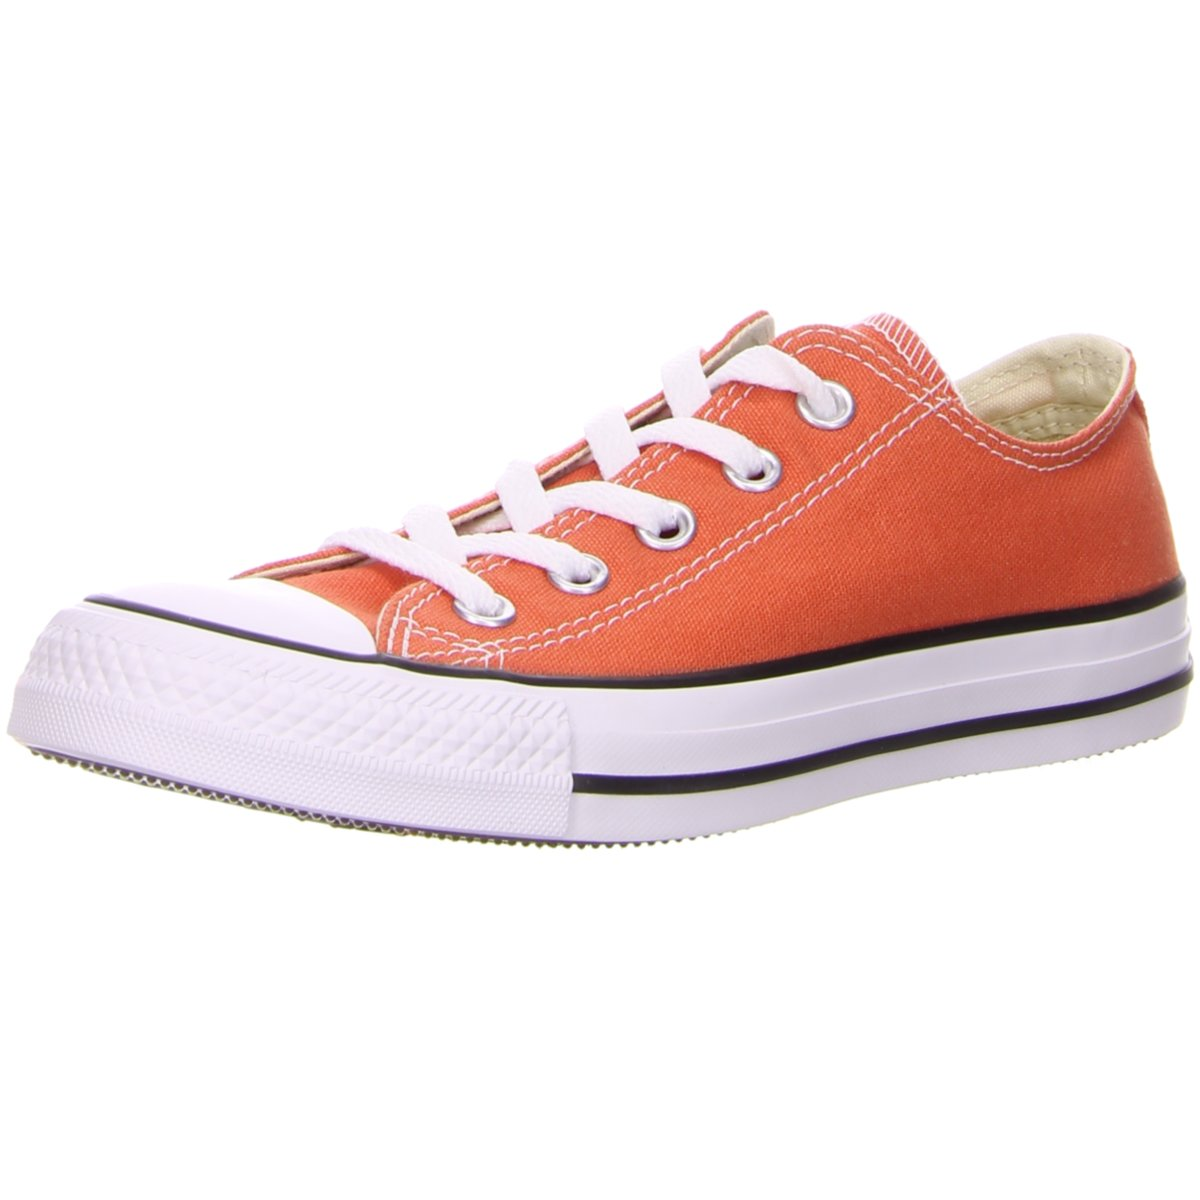 NEU Converse Herren Sneaker CTAS OX My Van is on fire 151183C orange 171822